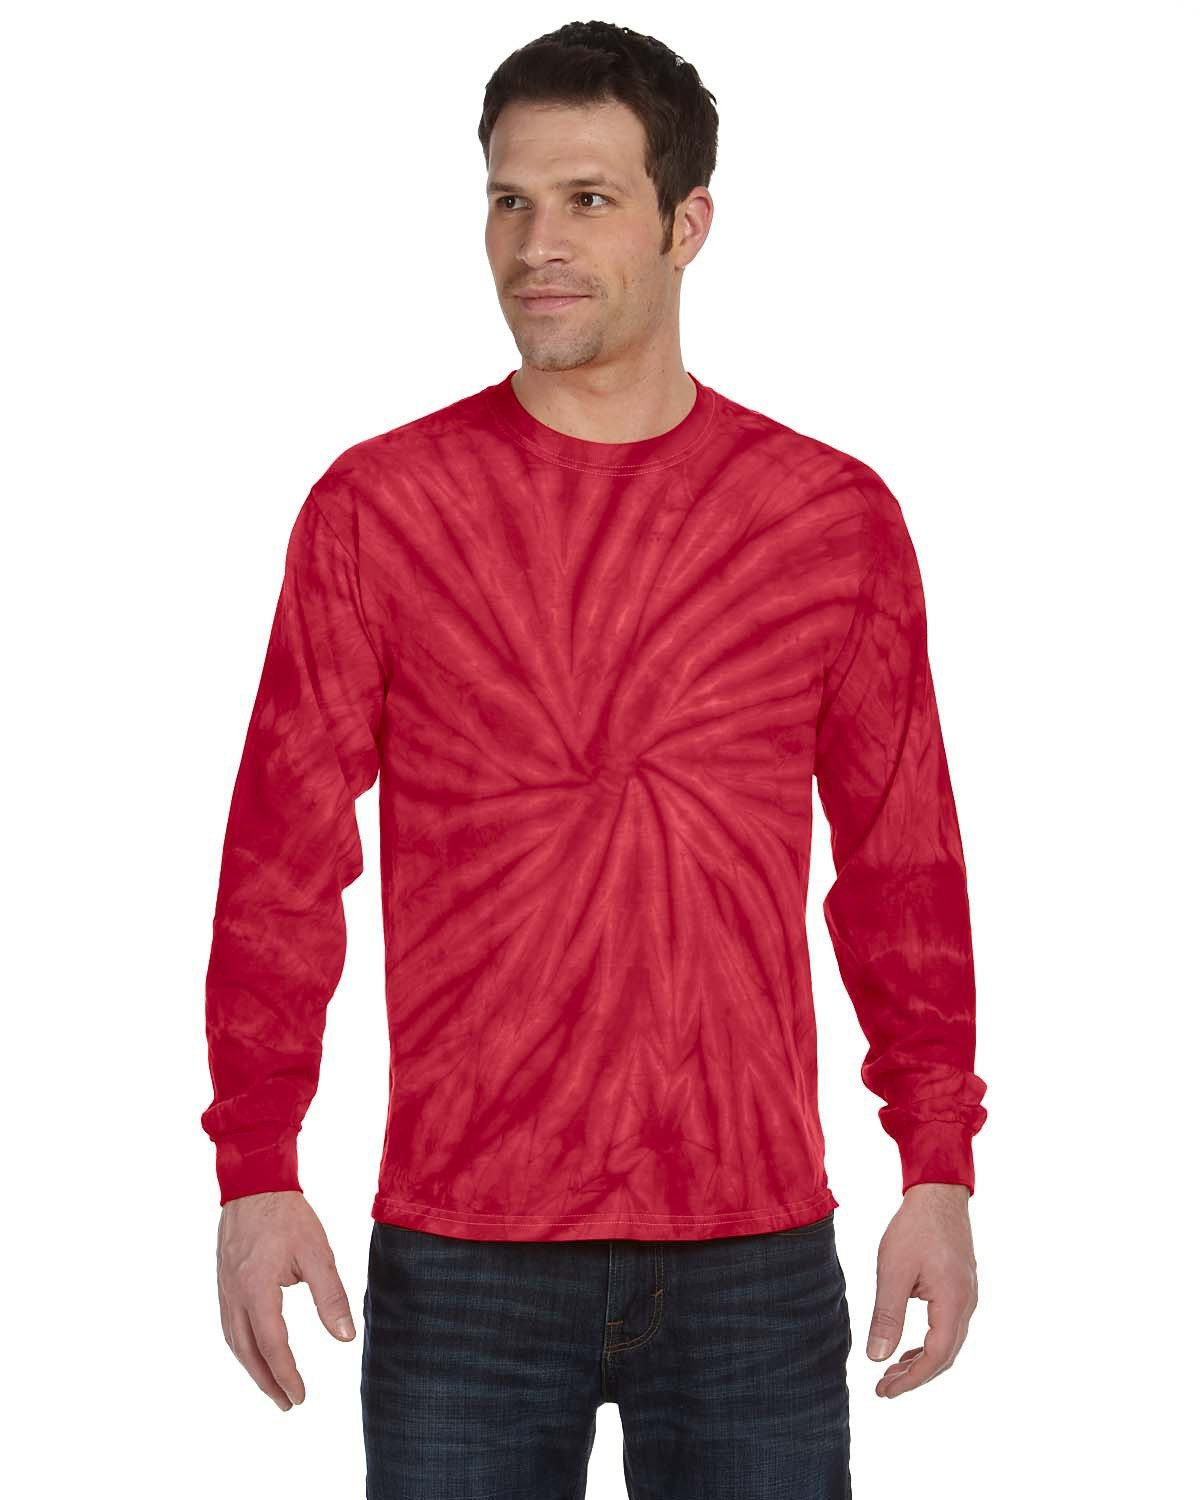 Tie-Dye Adult 5.4 oz. 100% Cotton Long-Sleeve T-Shirt SPIDER RED